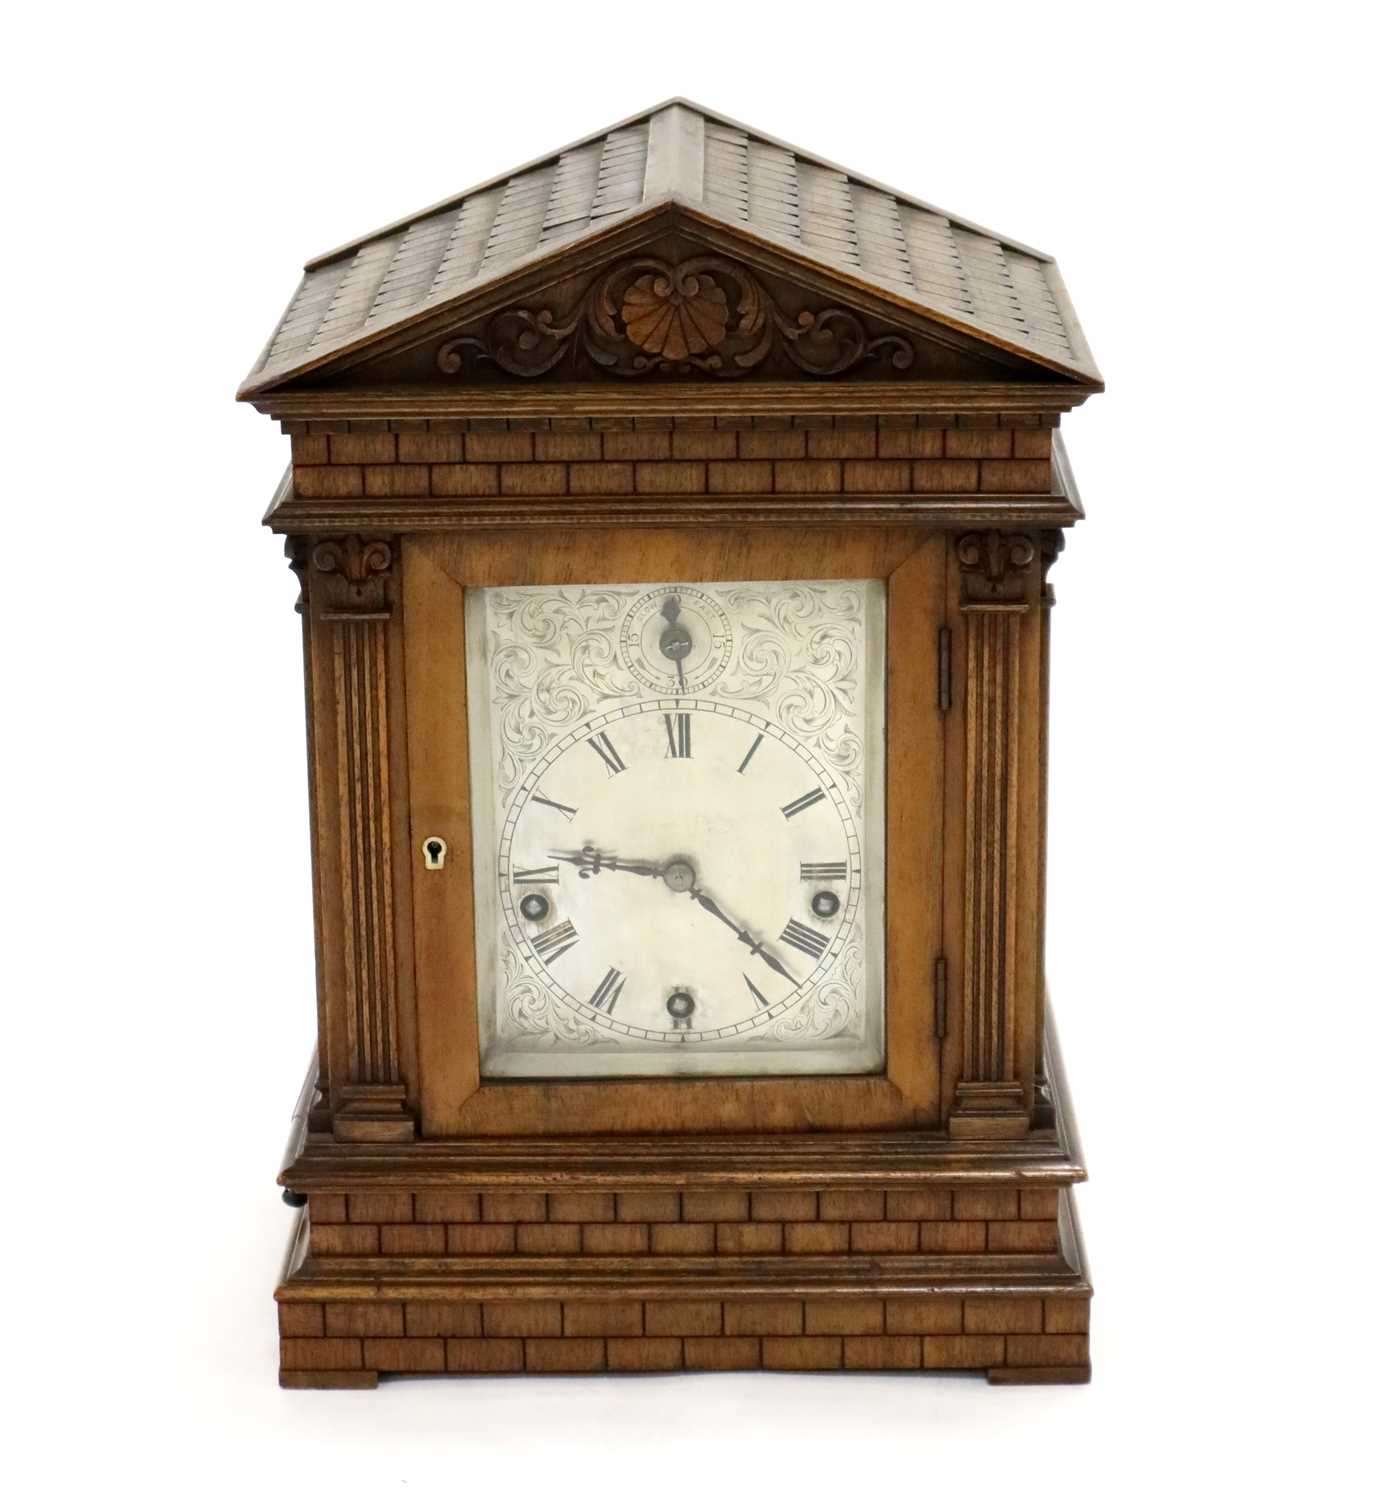 Lot 206-A 19th century German rosewood cased architectural bracket clock